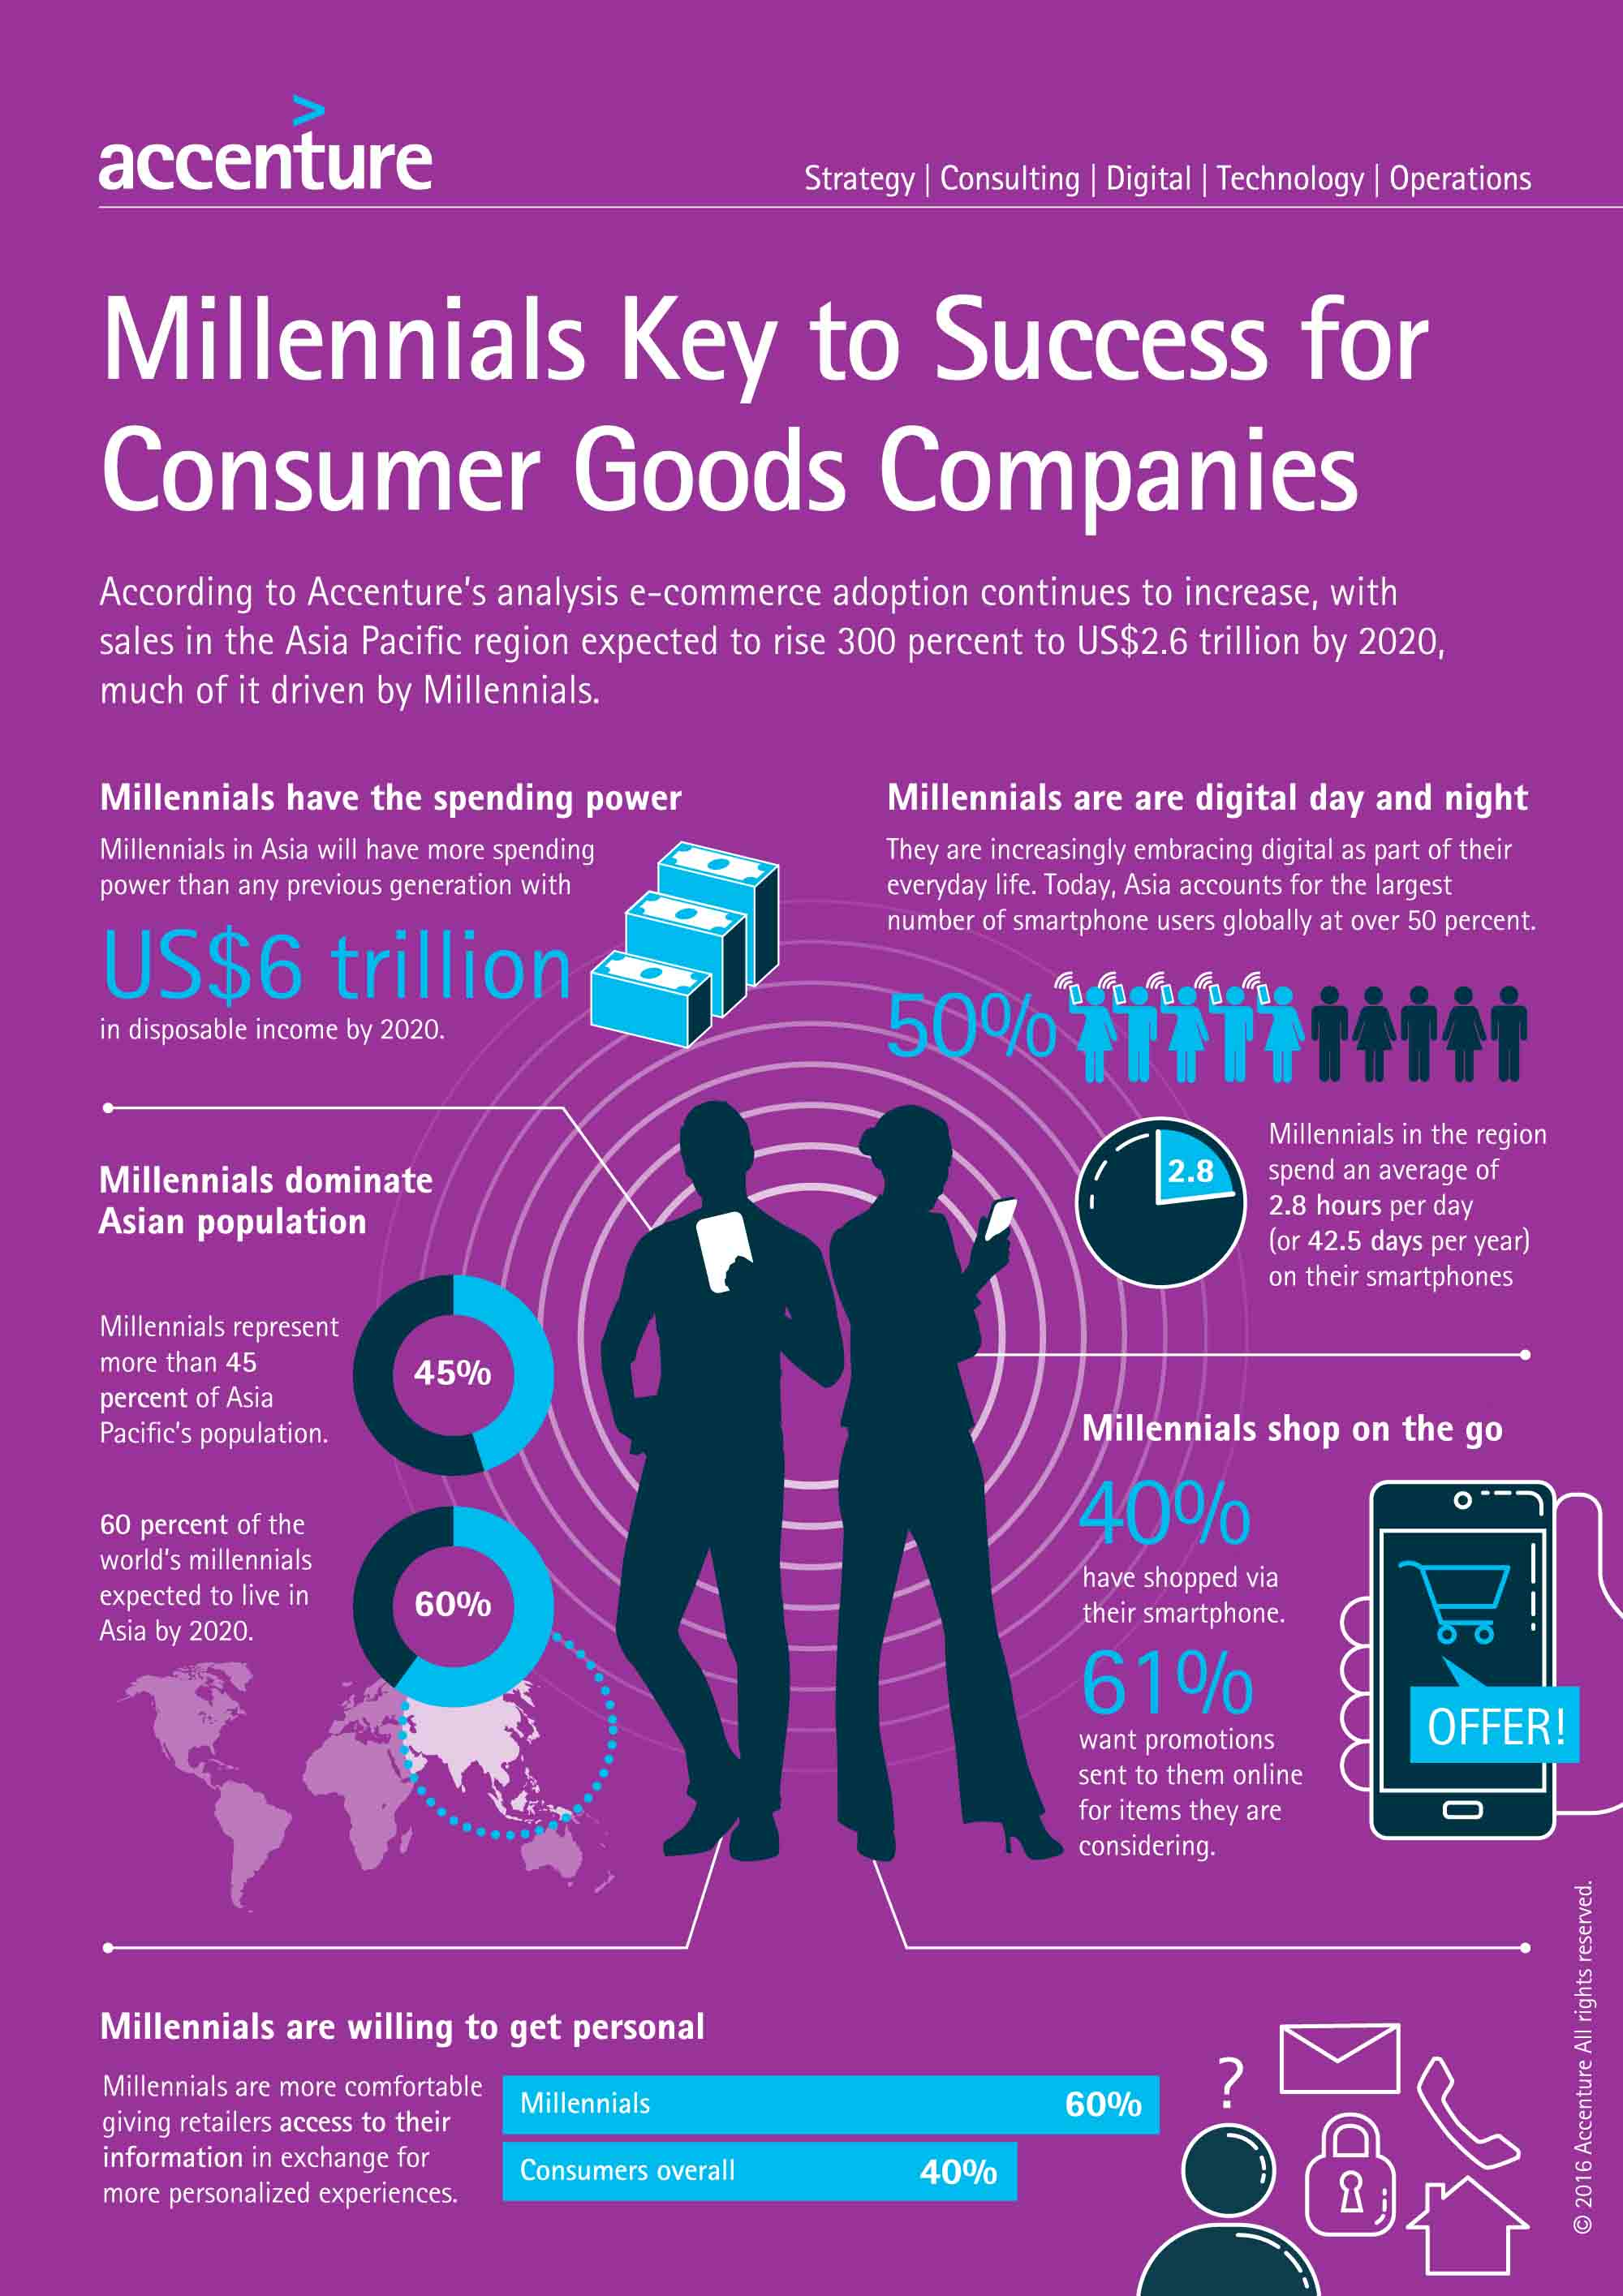 Accenture: Retailers and consumer packaged goods companies must improve their understanding of the millennial generation in Asia